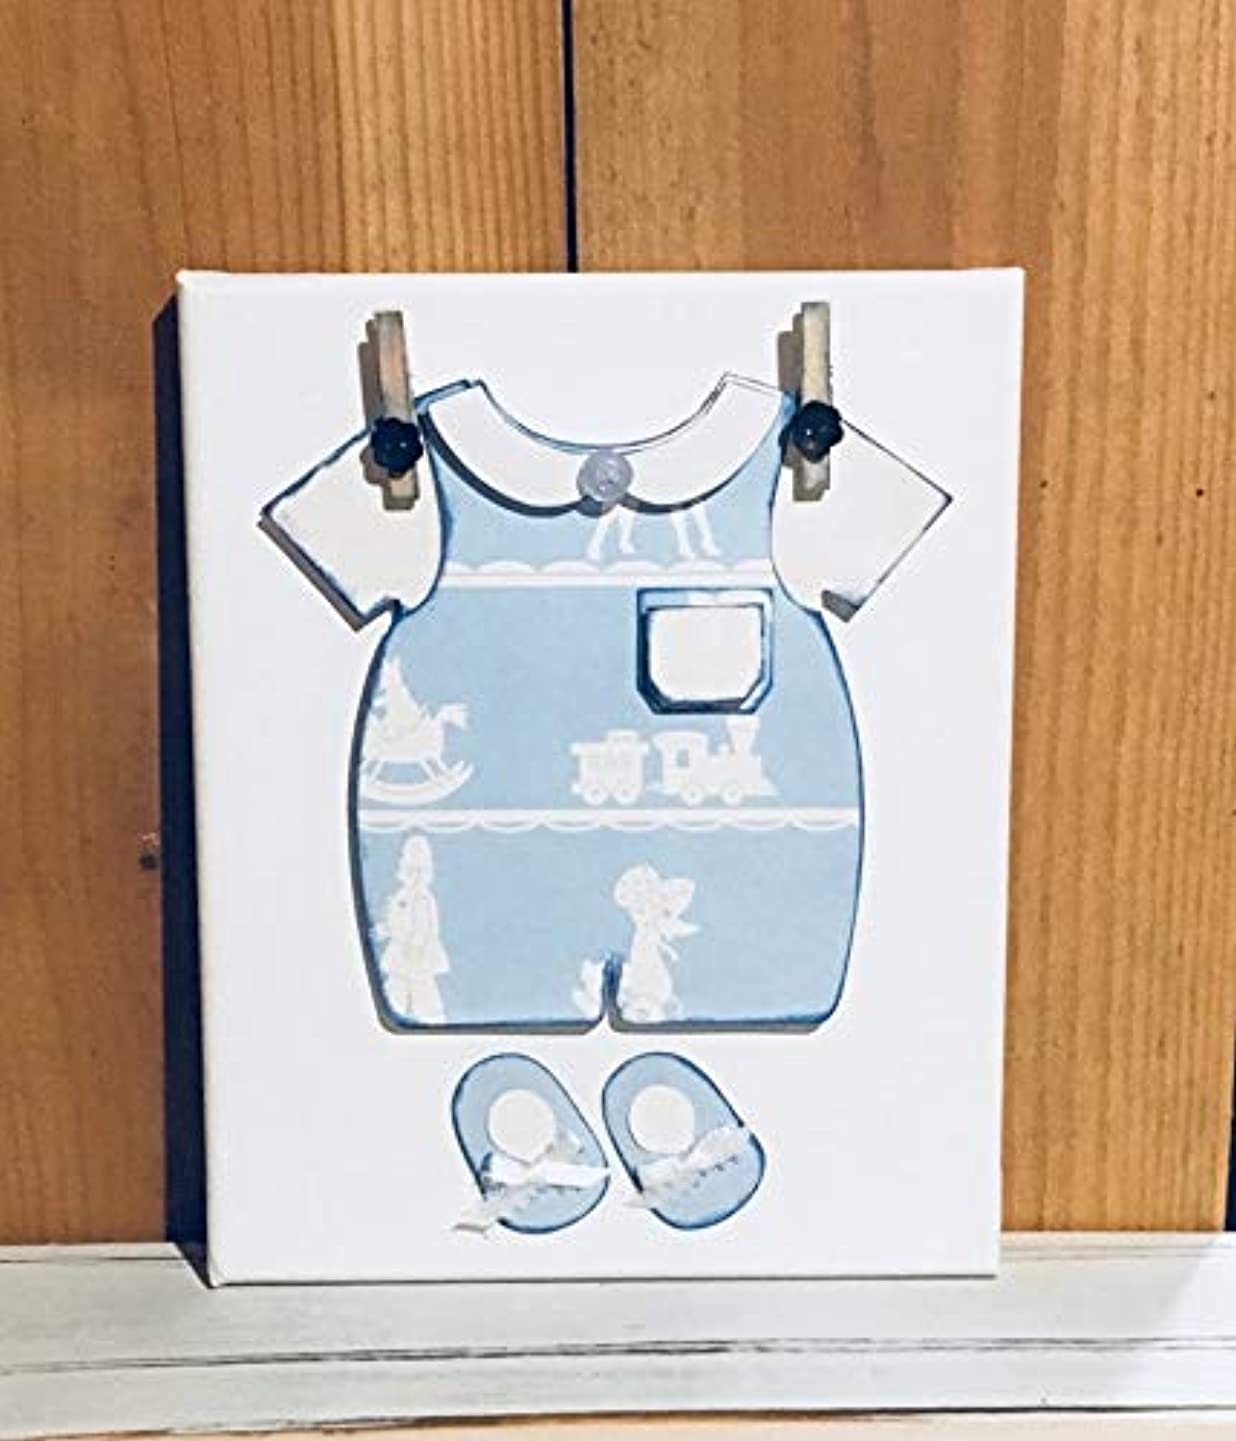 Home Decoration Blue and White Paper Baby Boy Outfit 8 x 10 Canvas Wall Hanging, Nursery Decor, Wall Hanging